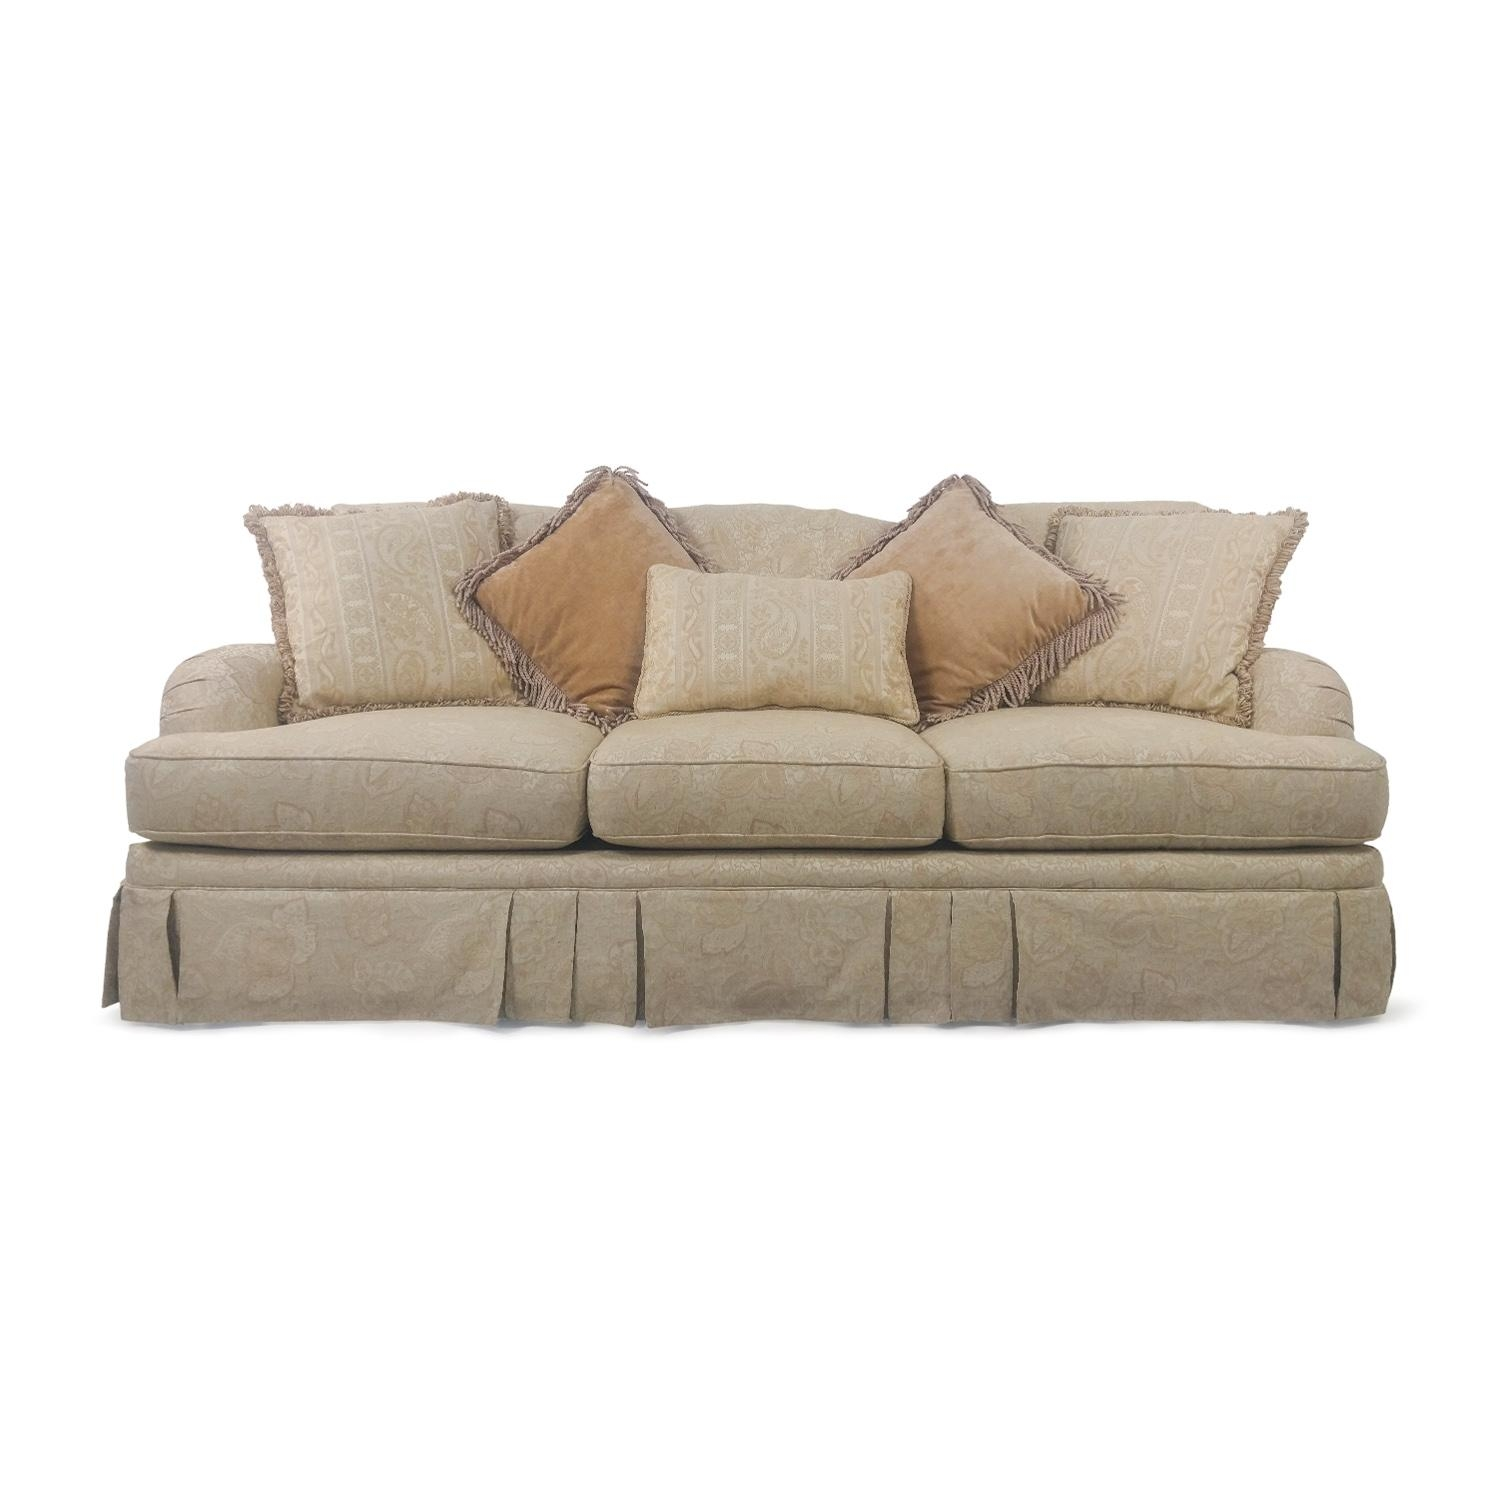 84% Off – Thomas Alexander Thomas Alexander Classic Sofa / Sofas Throughout Classic Sofas For Sale (Image 3 of 20)